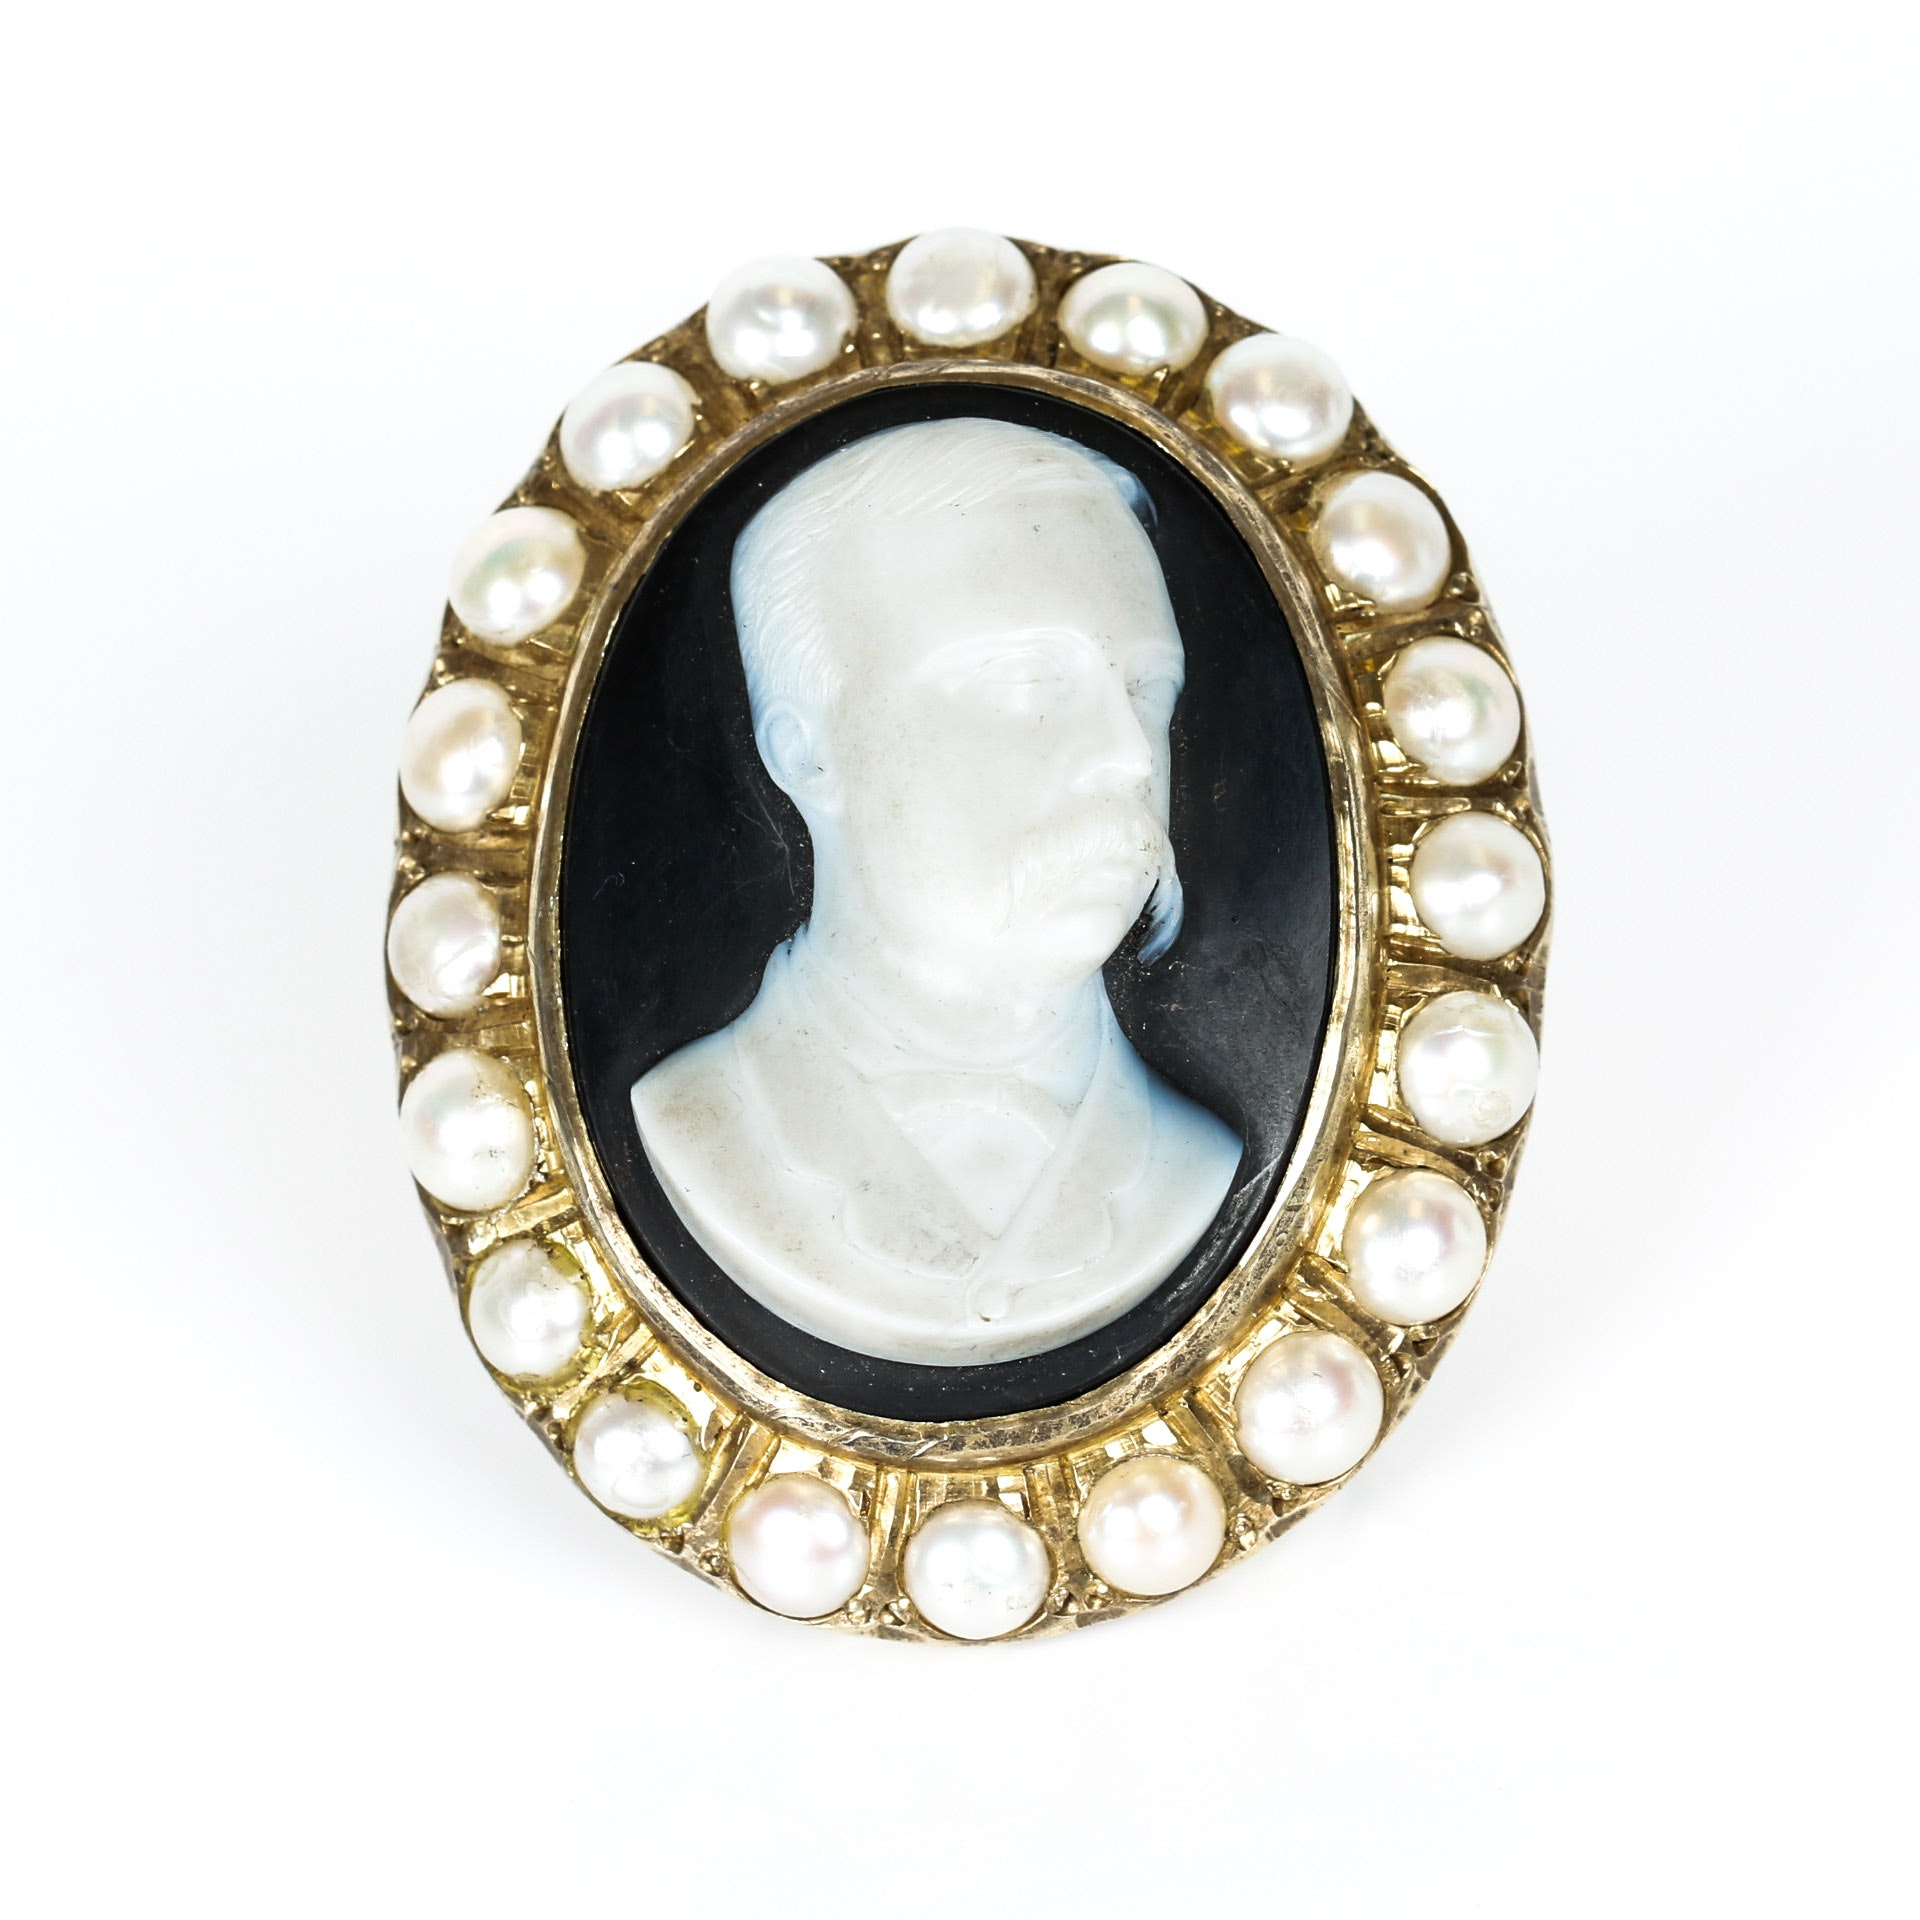 Antique Black Onyx Hard Stone Cameo in Vermeil with Pearl Border